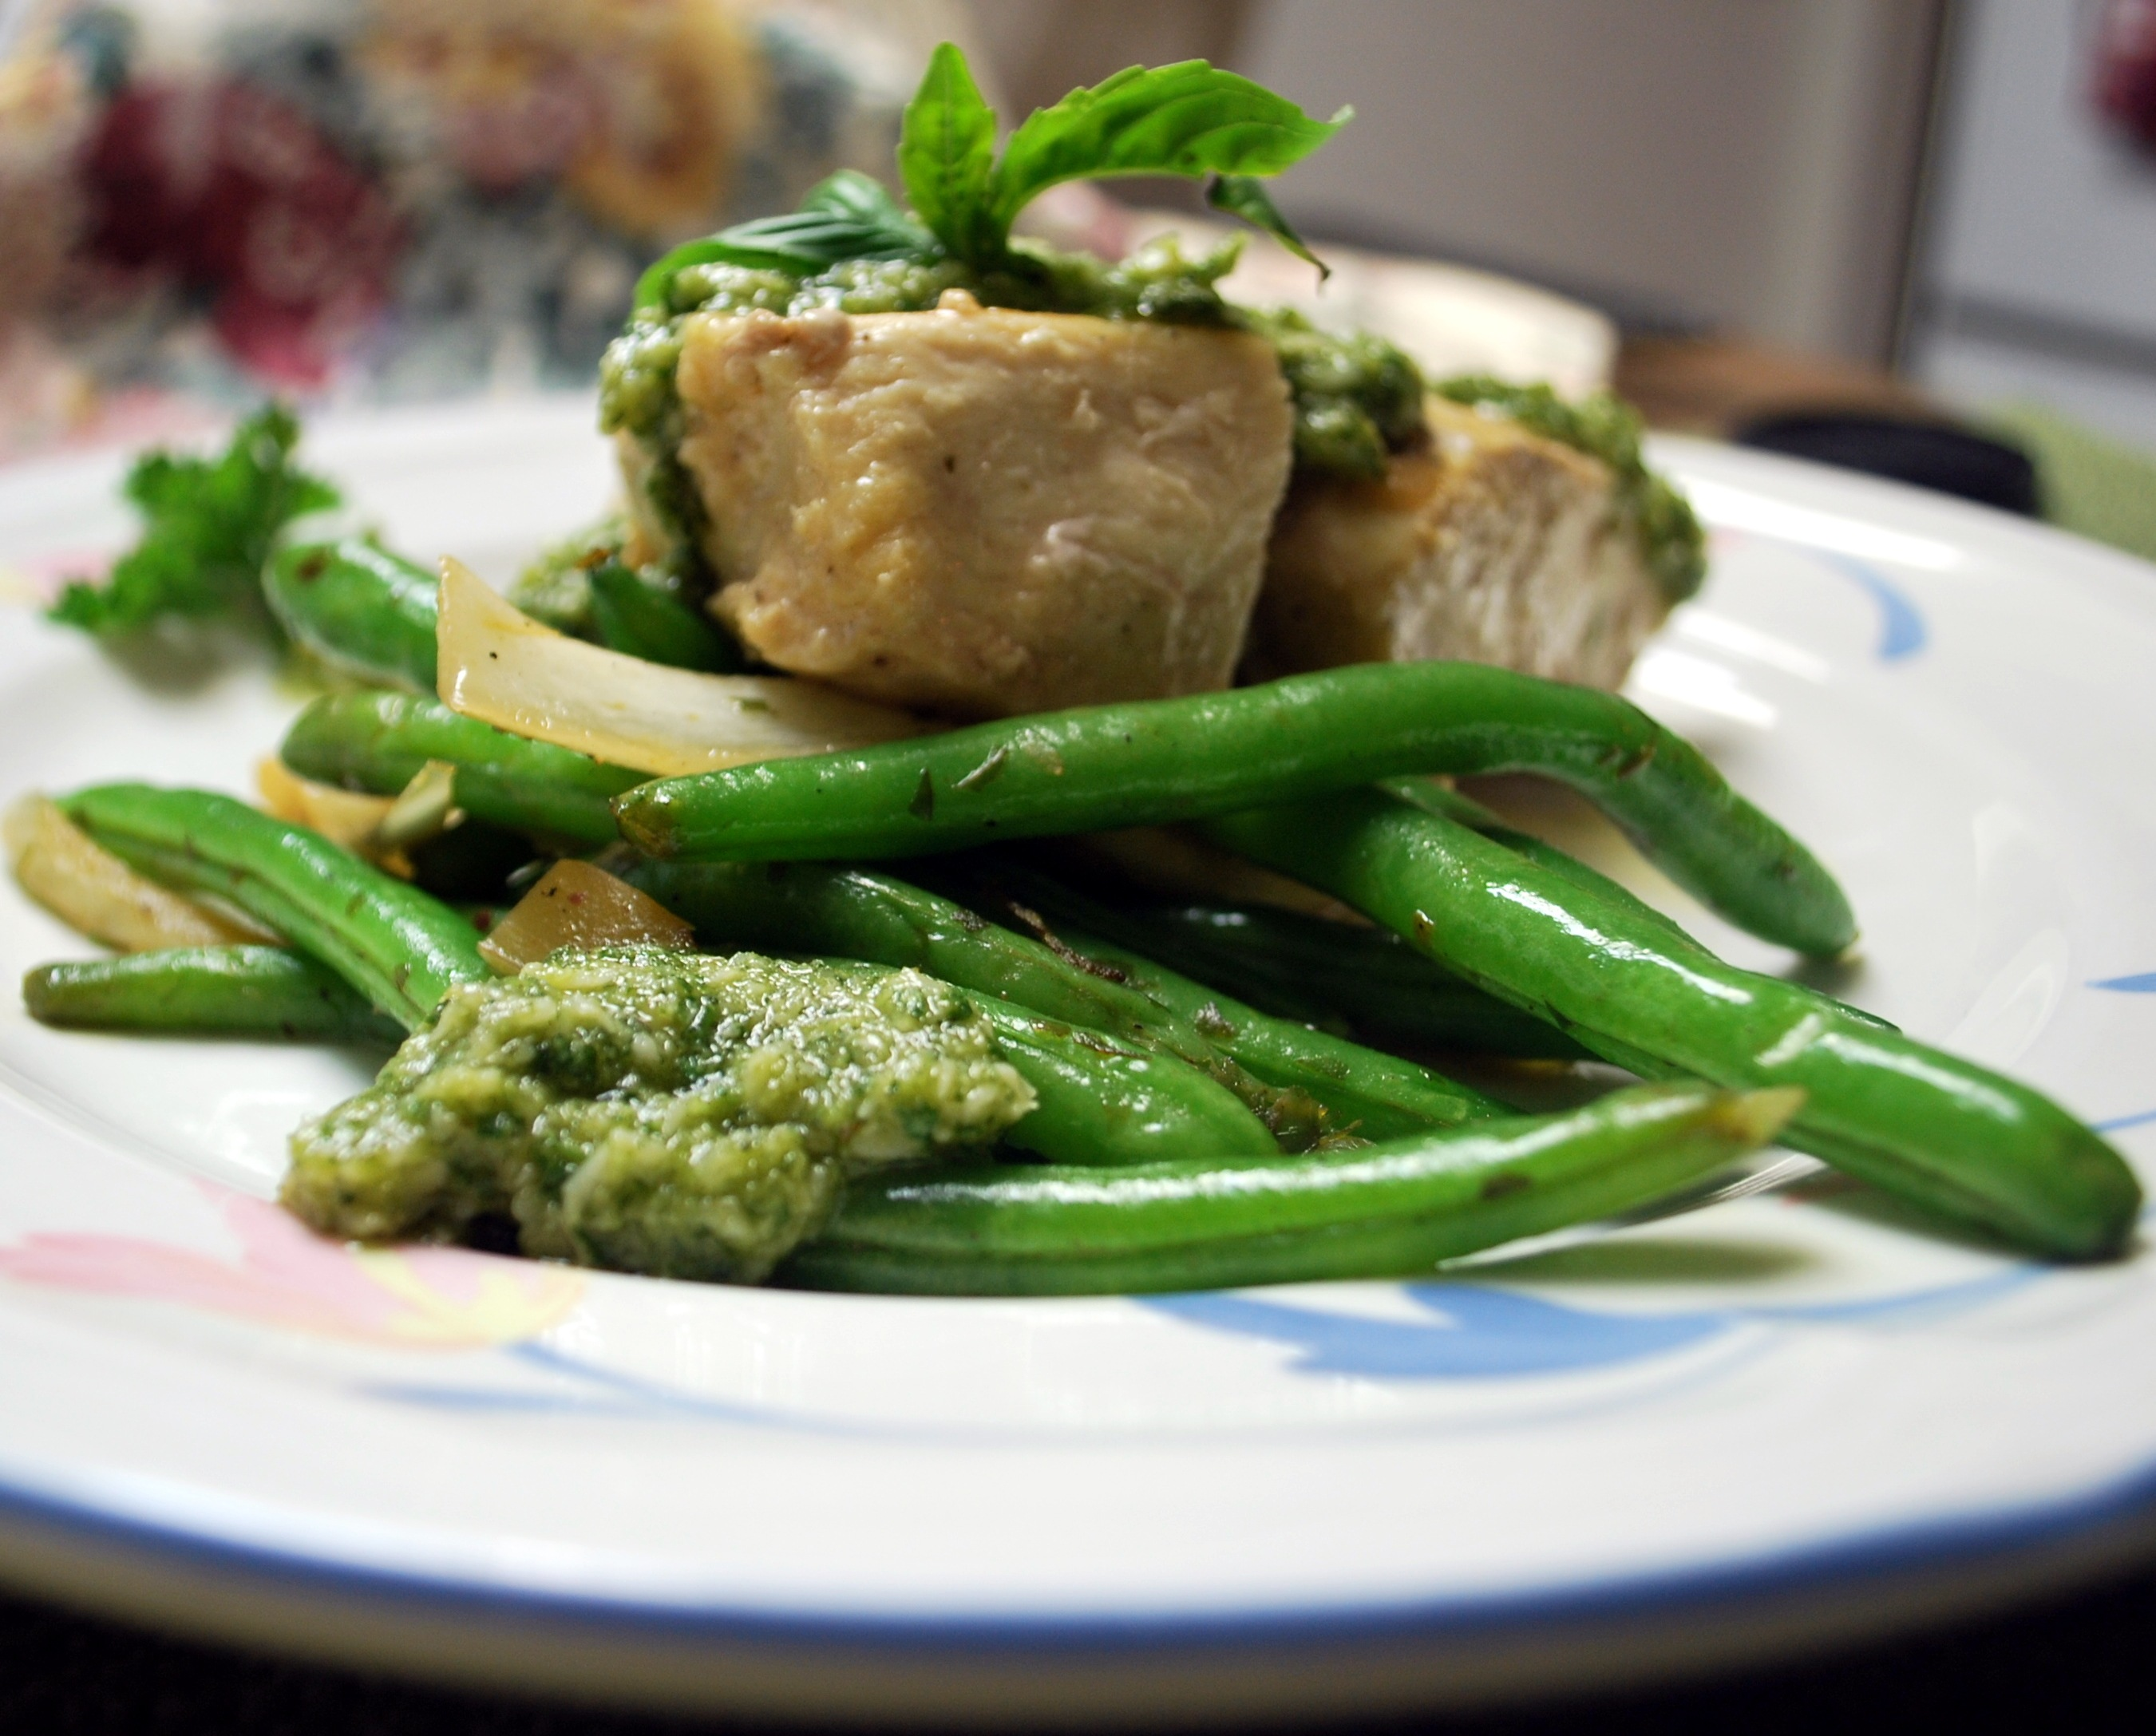 Basil and Pine Nut Pesto on Vegetables and Chicken